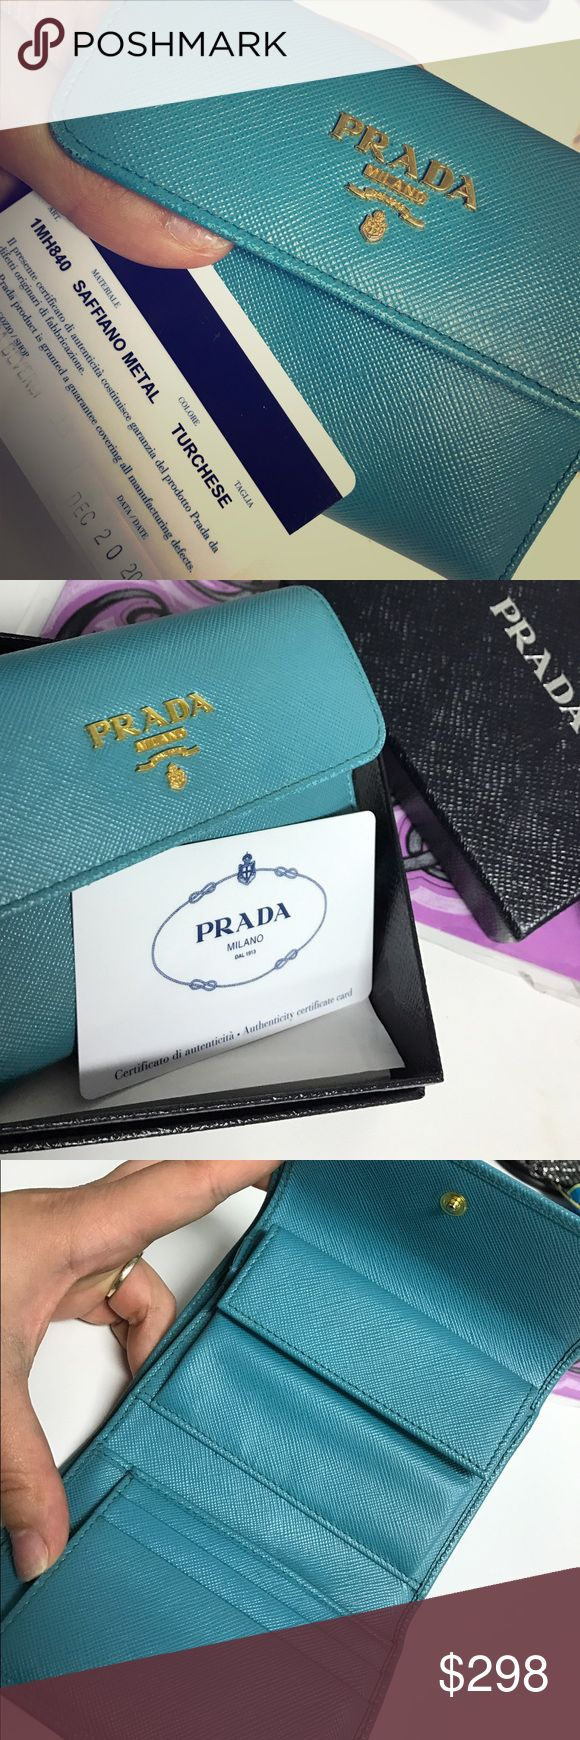 Tiffany blue Authentic Prada Wallet Tiffany blue authentic Prada Wallet. Comes with card of authenticity and box. Slight discoloration on corner of wallet. PRICE FIRM! Prada Bags Wallets